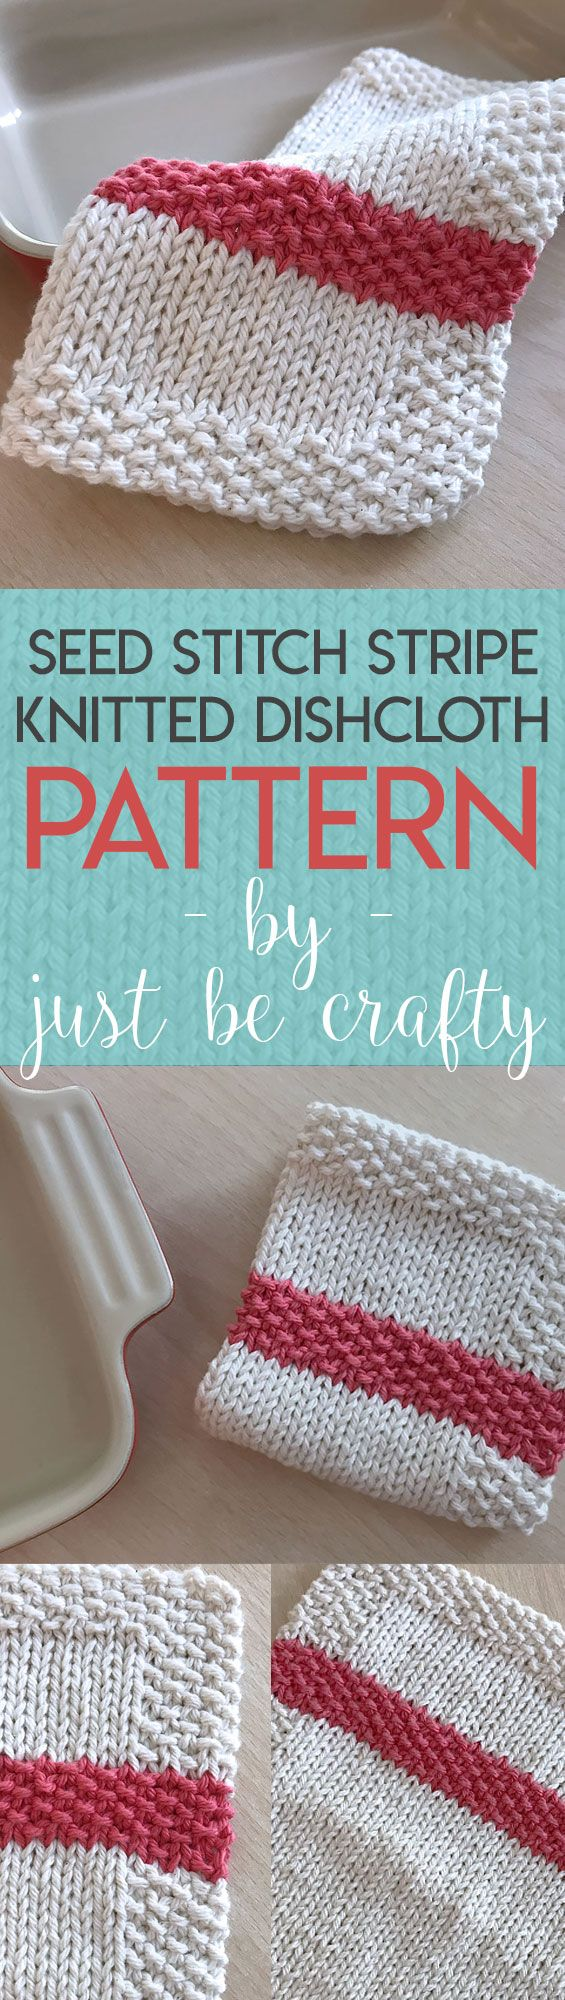 222 best Knit dishcloths and washclothes images on Pinterest ...